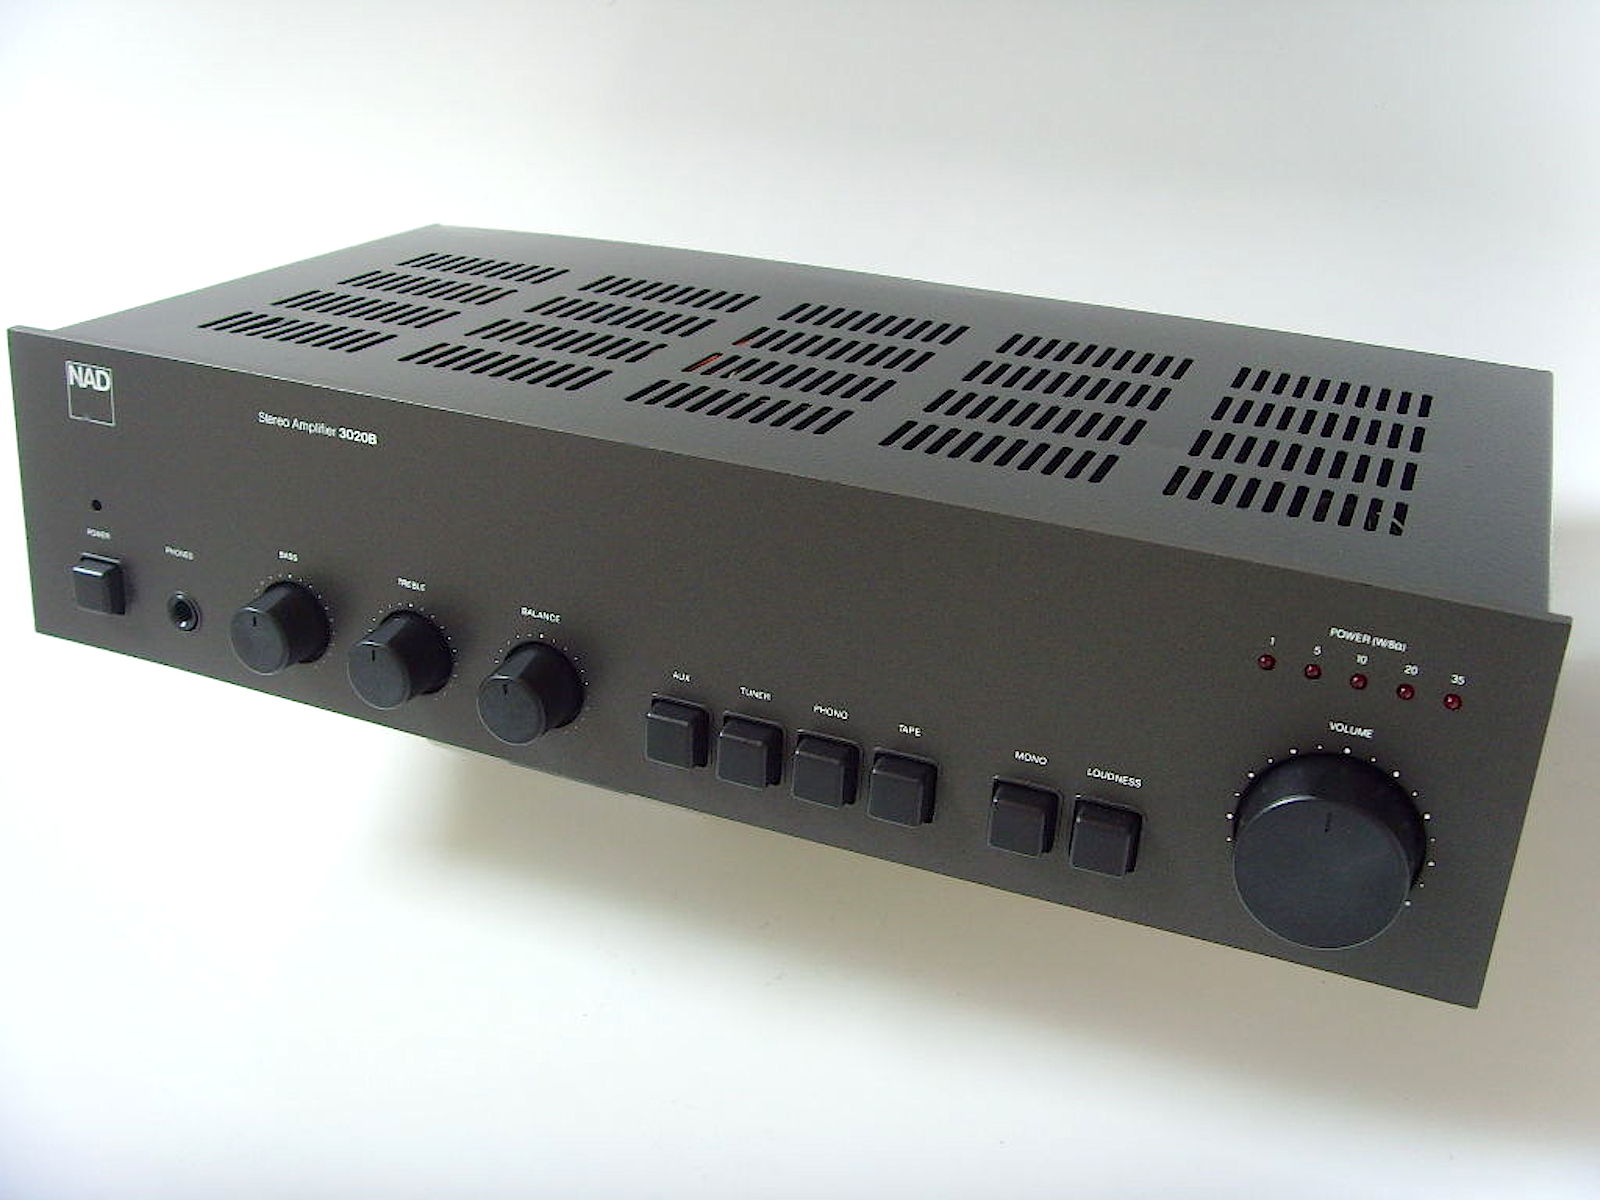 Buying A Decent Budget Amplifier Back In The Late Nineteen Seventies Wasnt Easy Market Was Swamped By Brushed Aluminium Fronted Japanese Designs